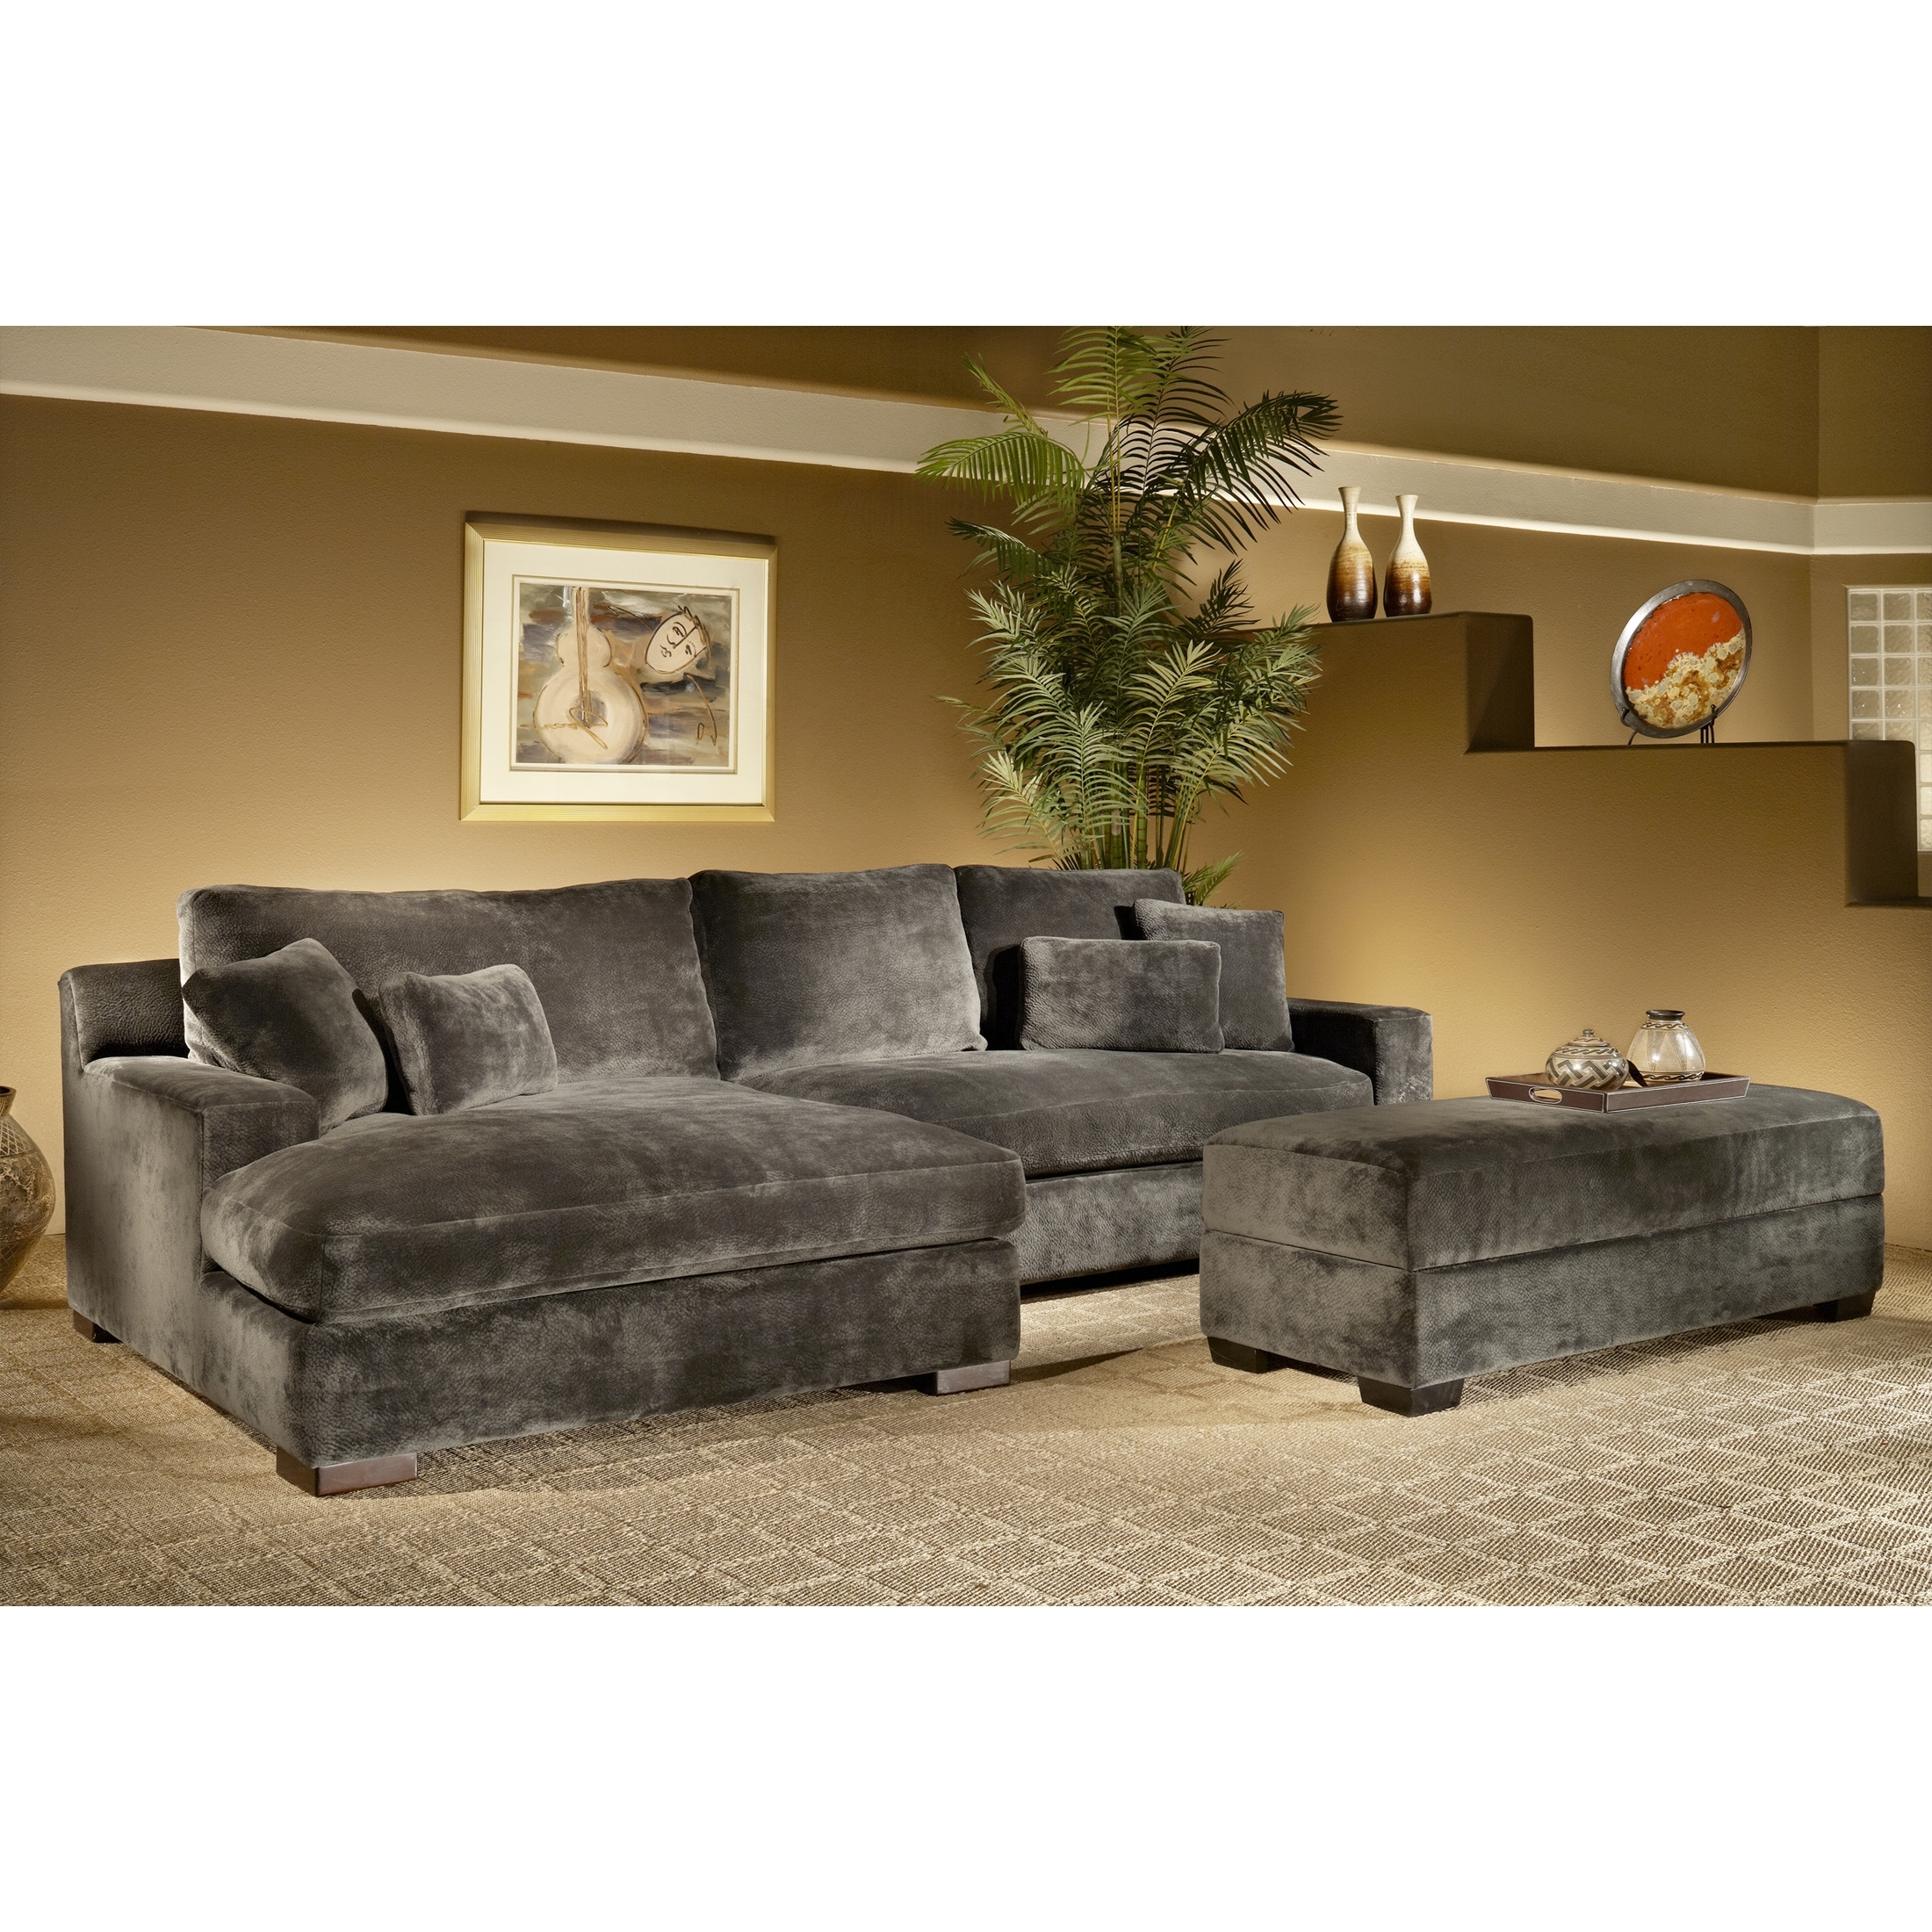 Kingston Ontario Sectional Sofas With Regard To Newest The Casual Contemporary Doris Two Piece Chaise Sectional Is (View 5 of 15)